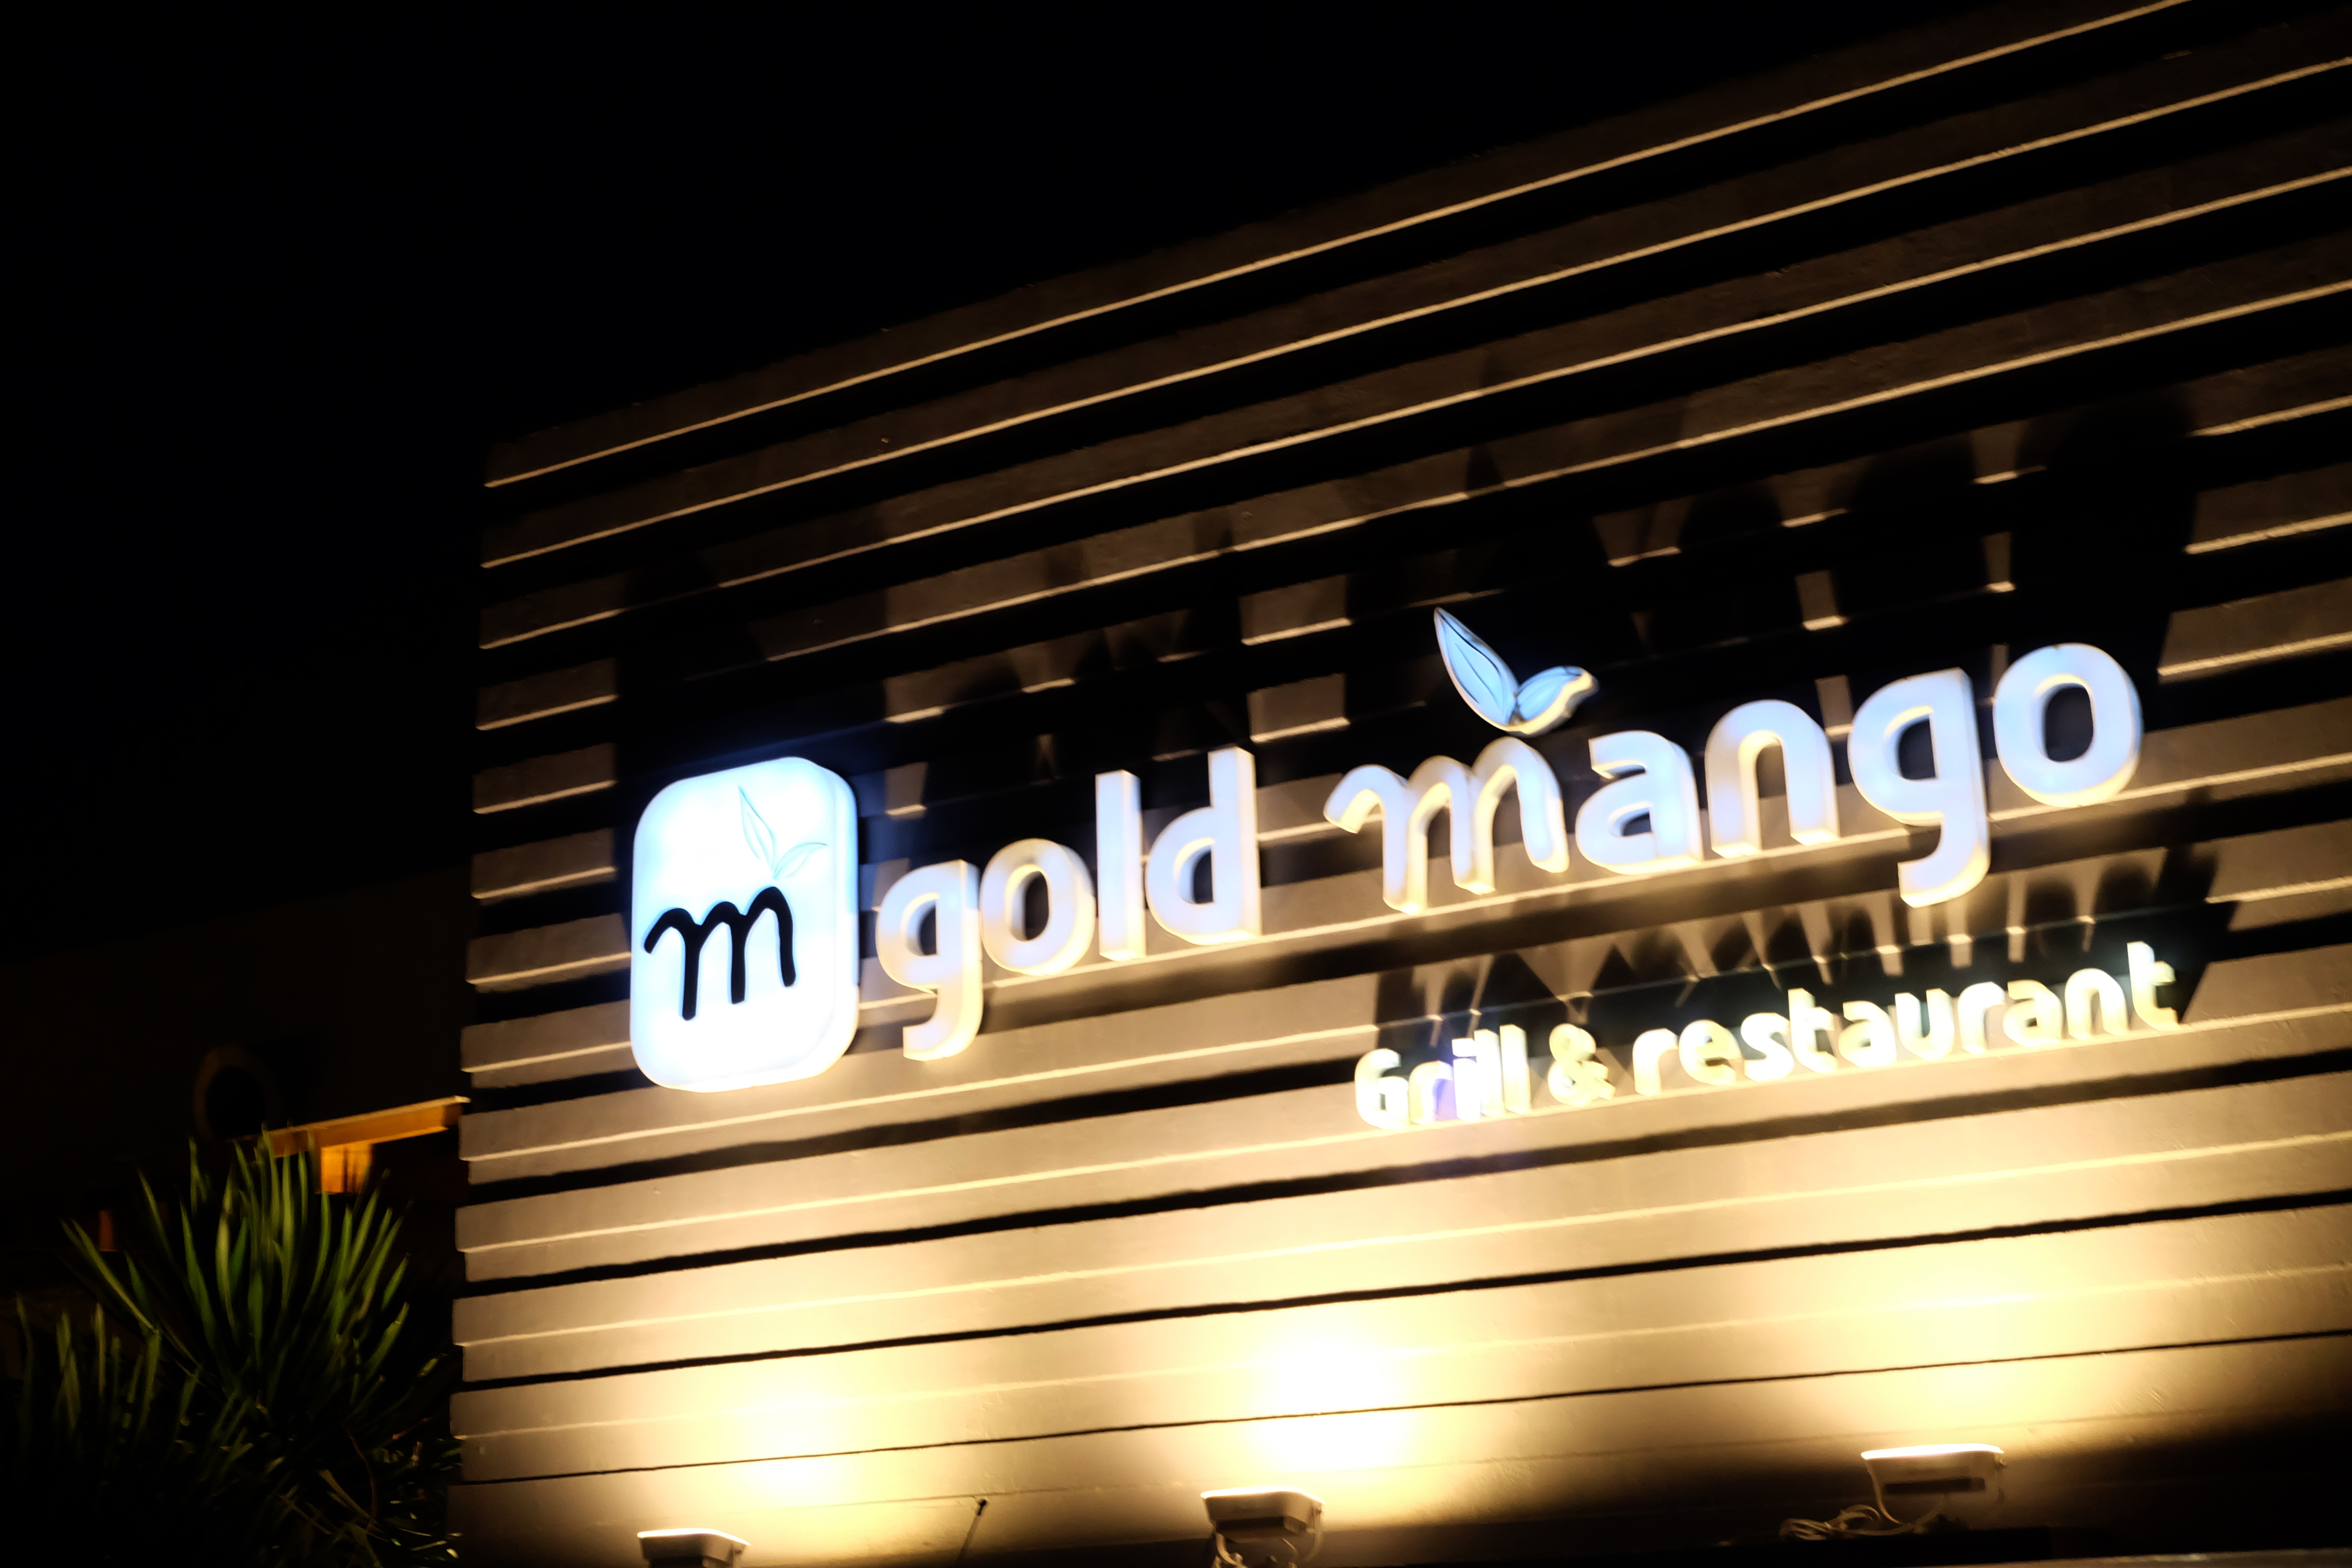 Hit or Miss @ Gold Mango Grill & Restaurant